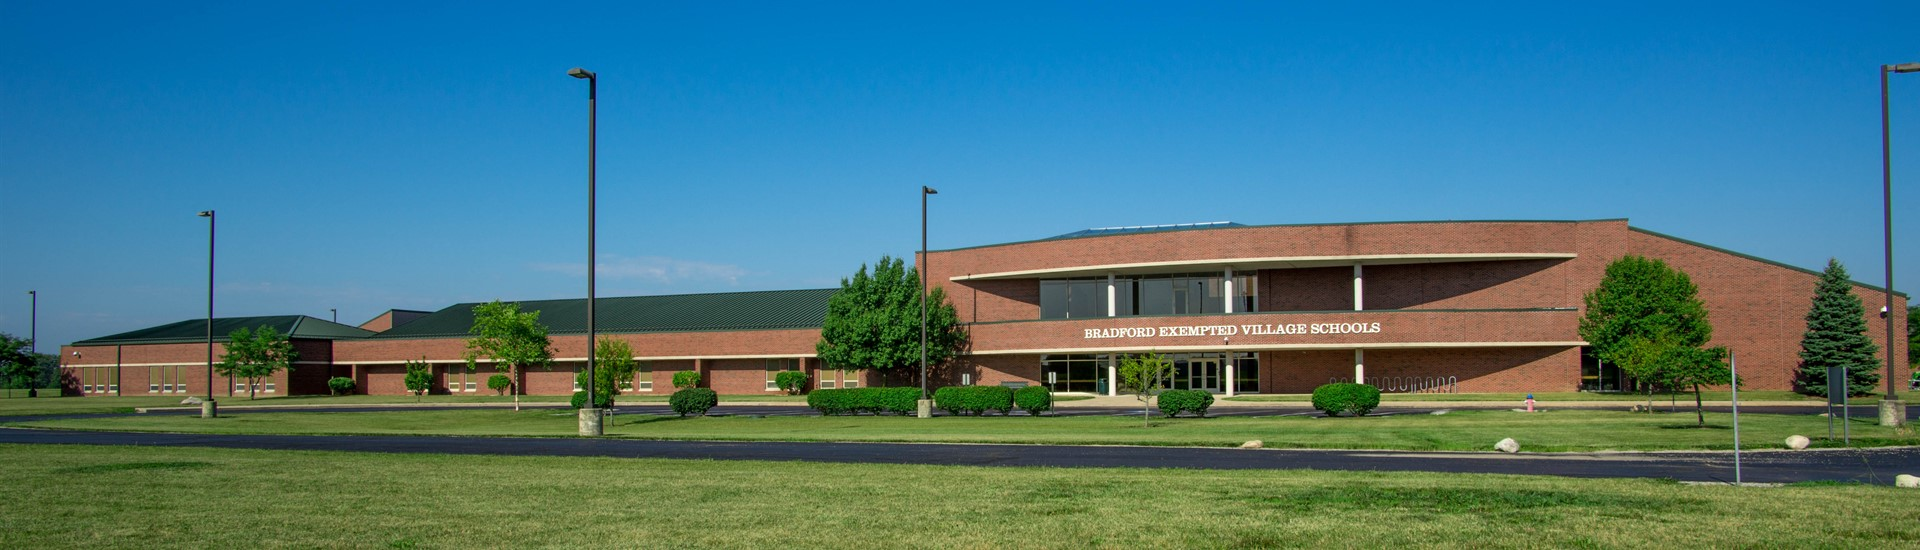 Bradford Exempted Village  Schools Front View